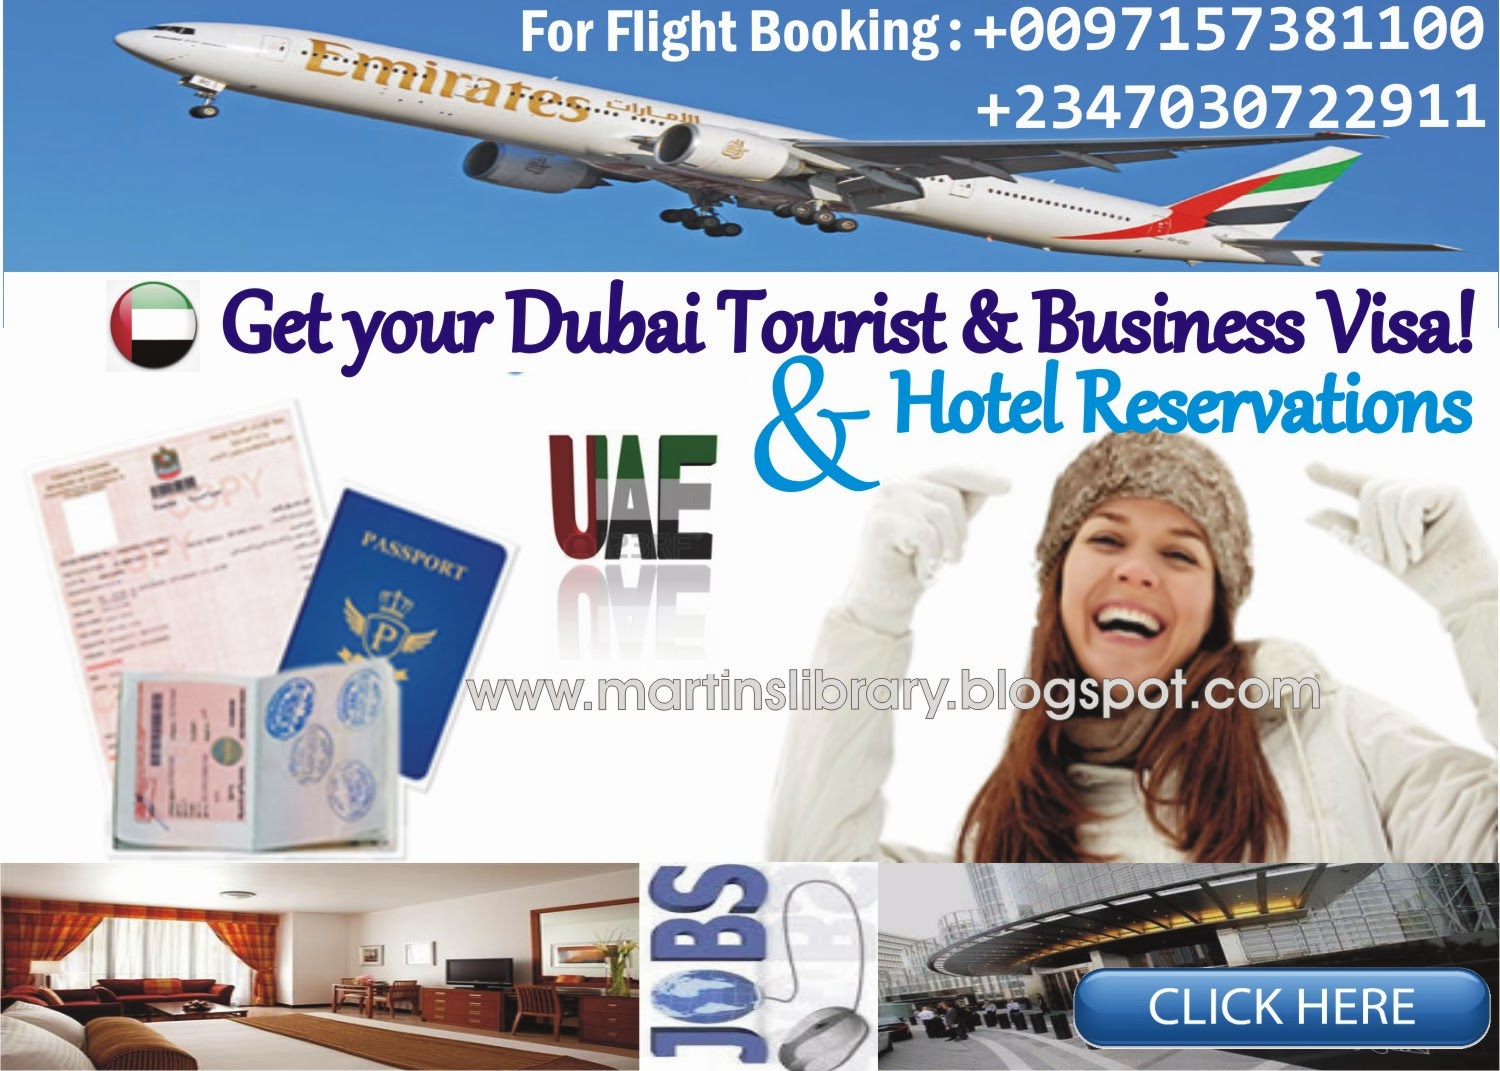 FLIGHT BOOKING RESERVATION